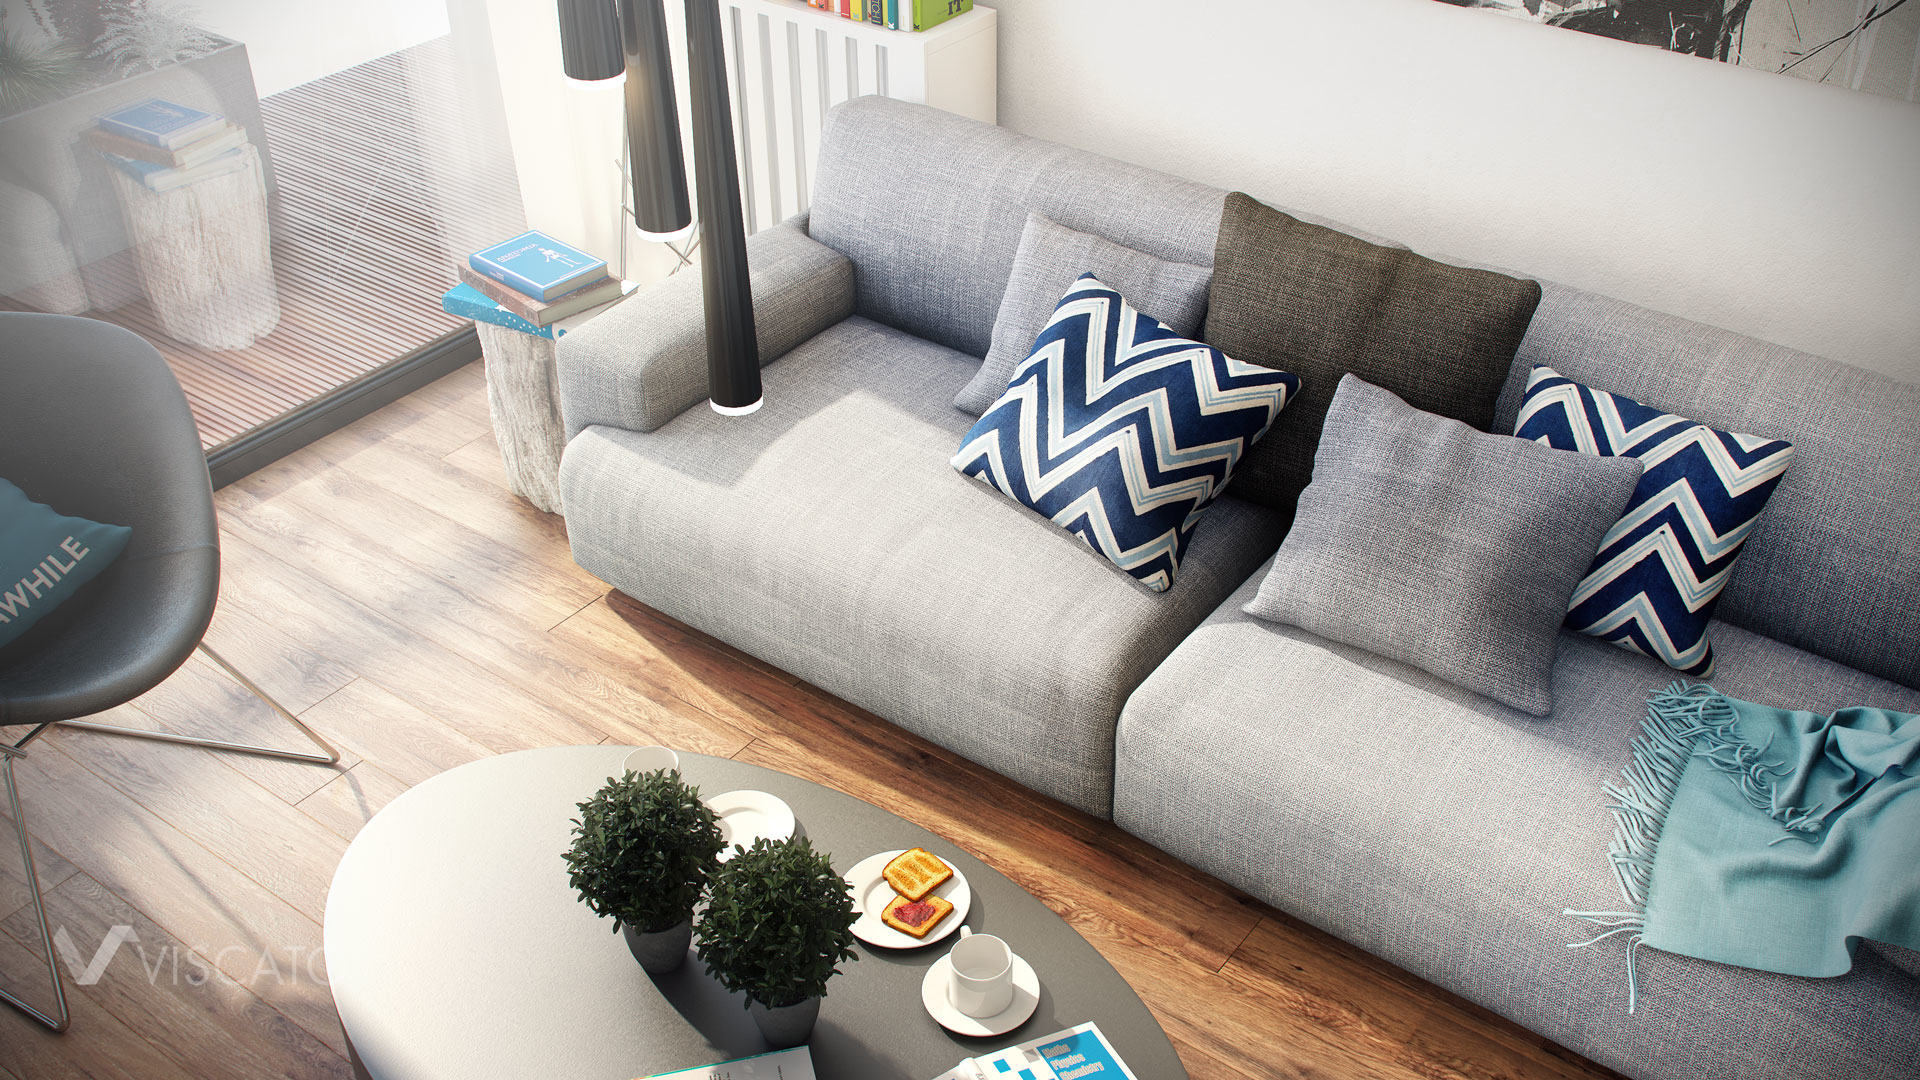 White modern interior of appartment, with wooden floor, grey sofa and pillows